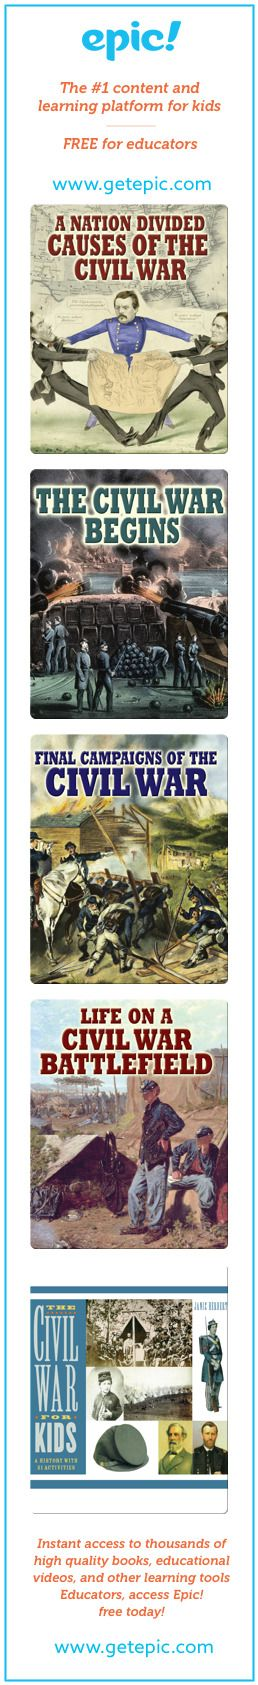 the events that occurred during the civil war in the us 1860 to 1869 including history, events stonewall jackson, during the first battle of bull run during the civil war the union uses african-american troops, the united states war department issued general order number 143 on may 22.